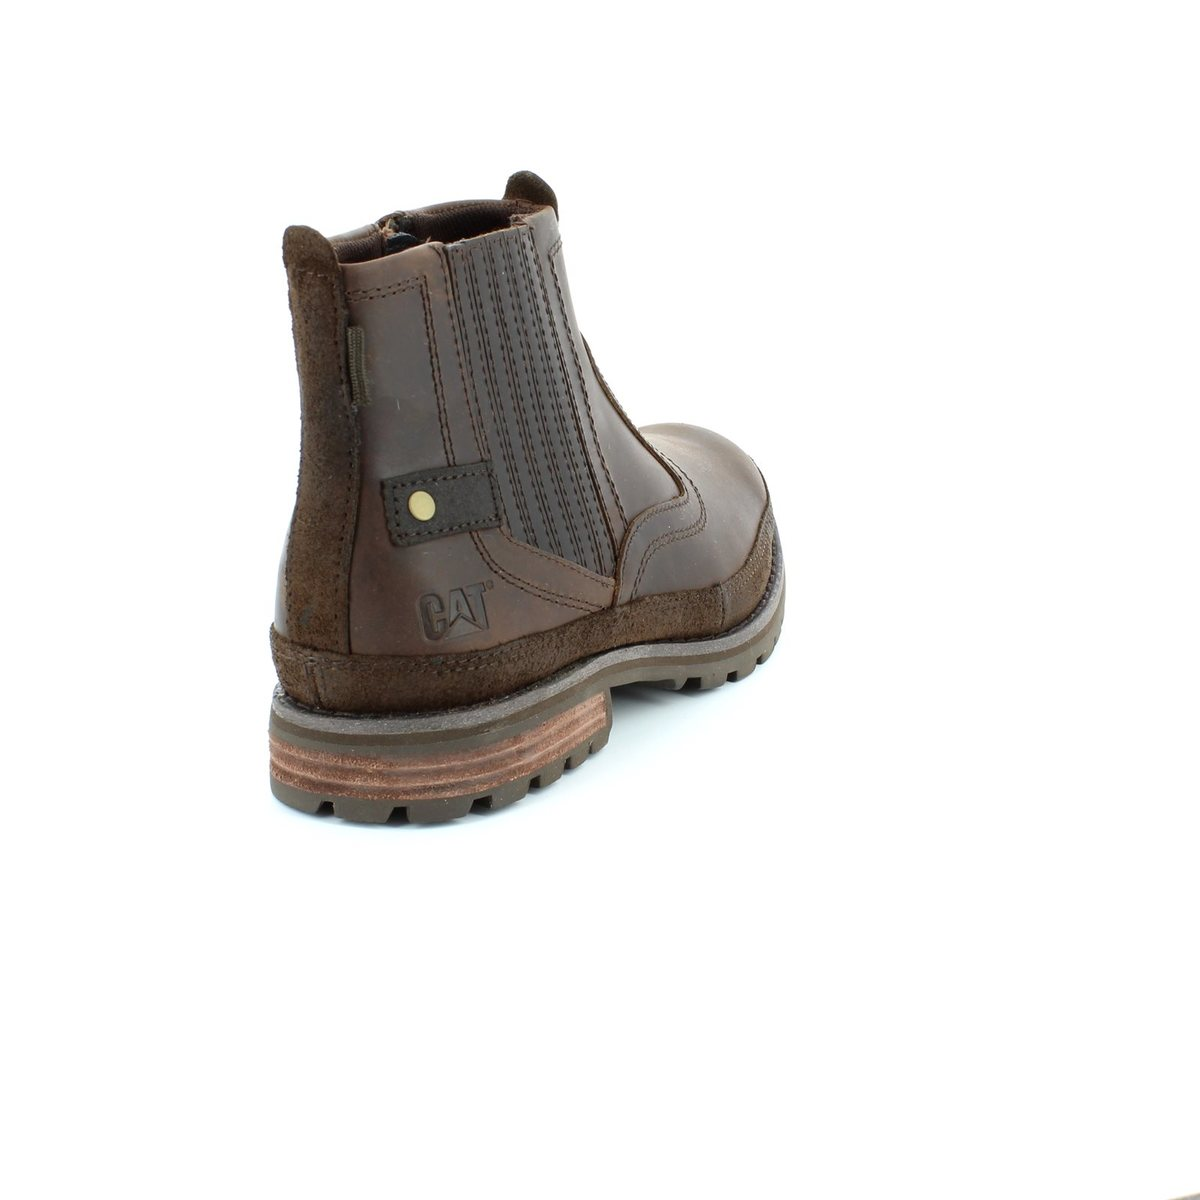 cat rivingston 7164 brown boots